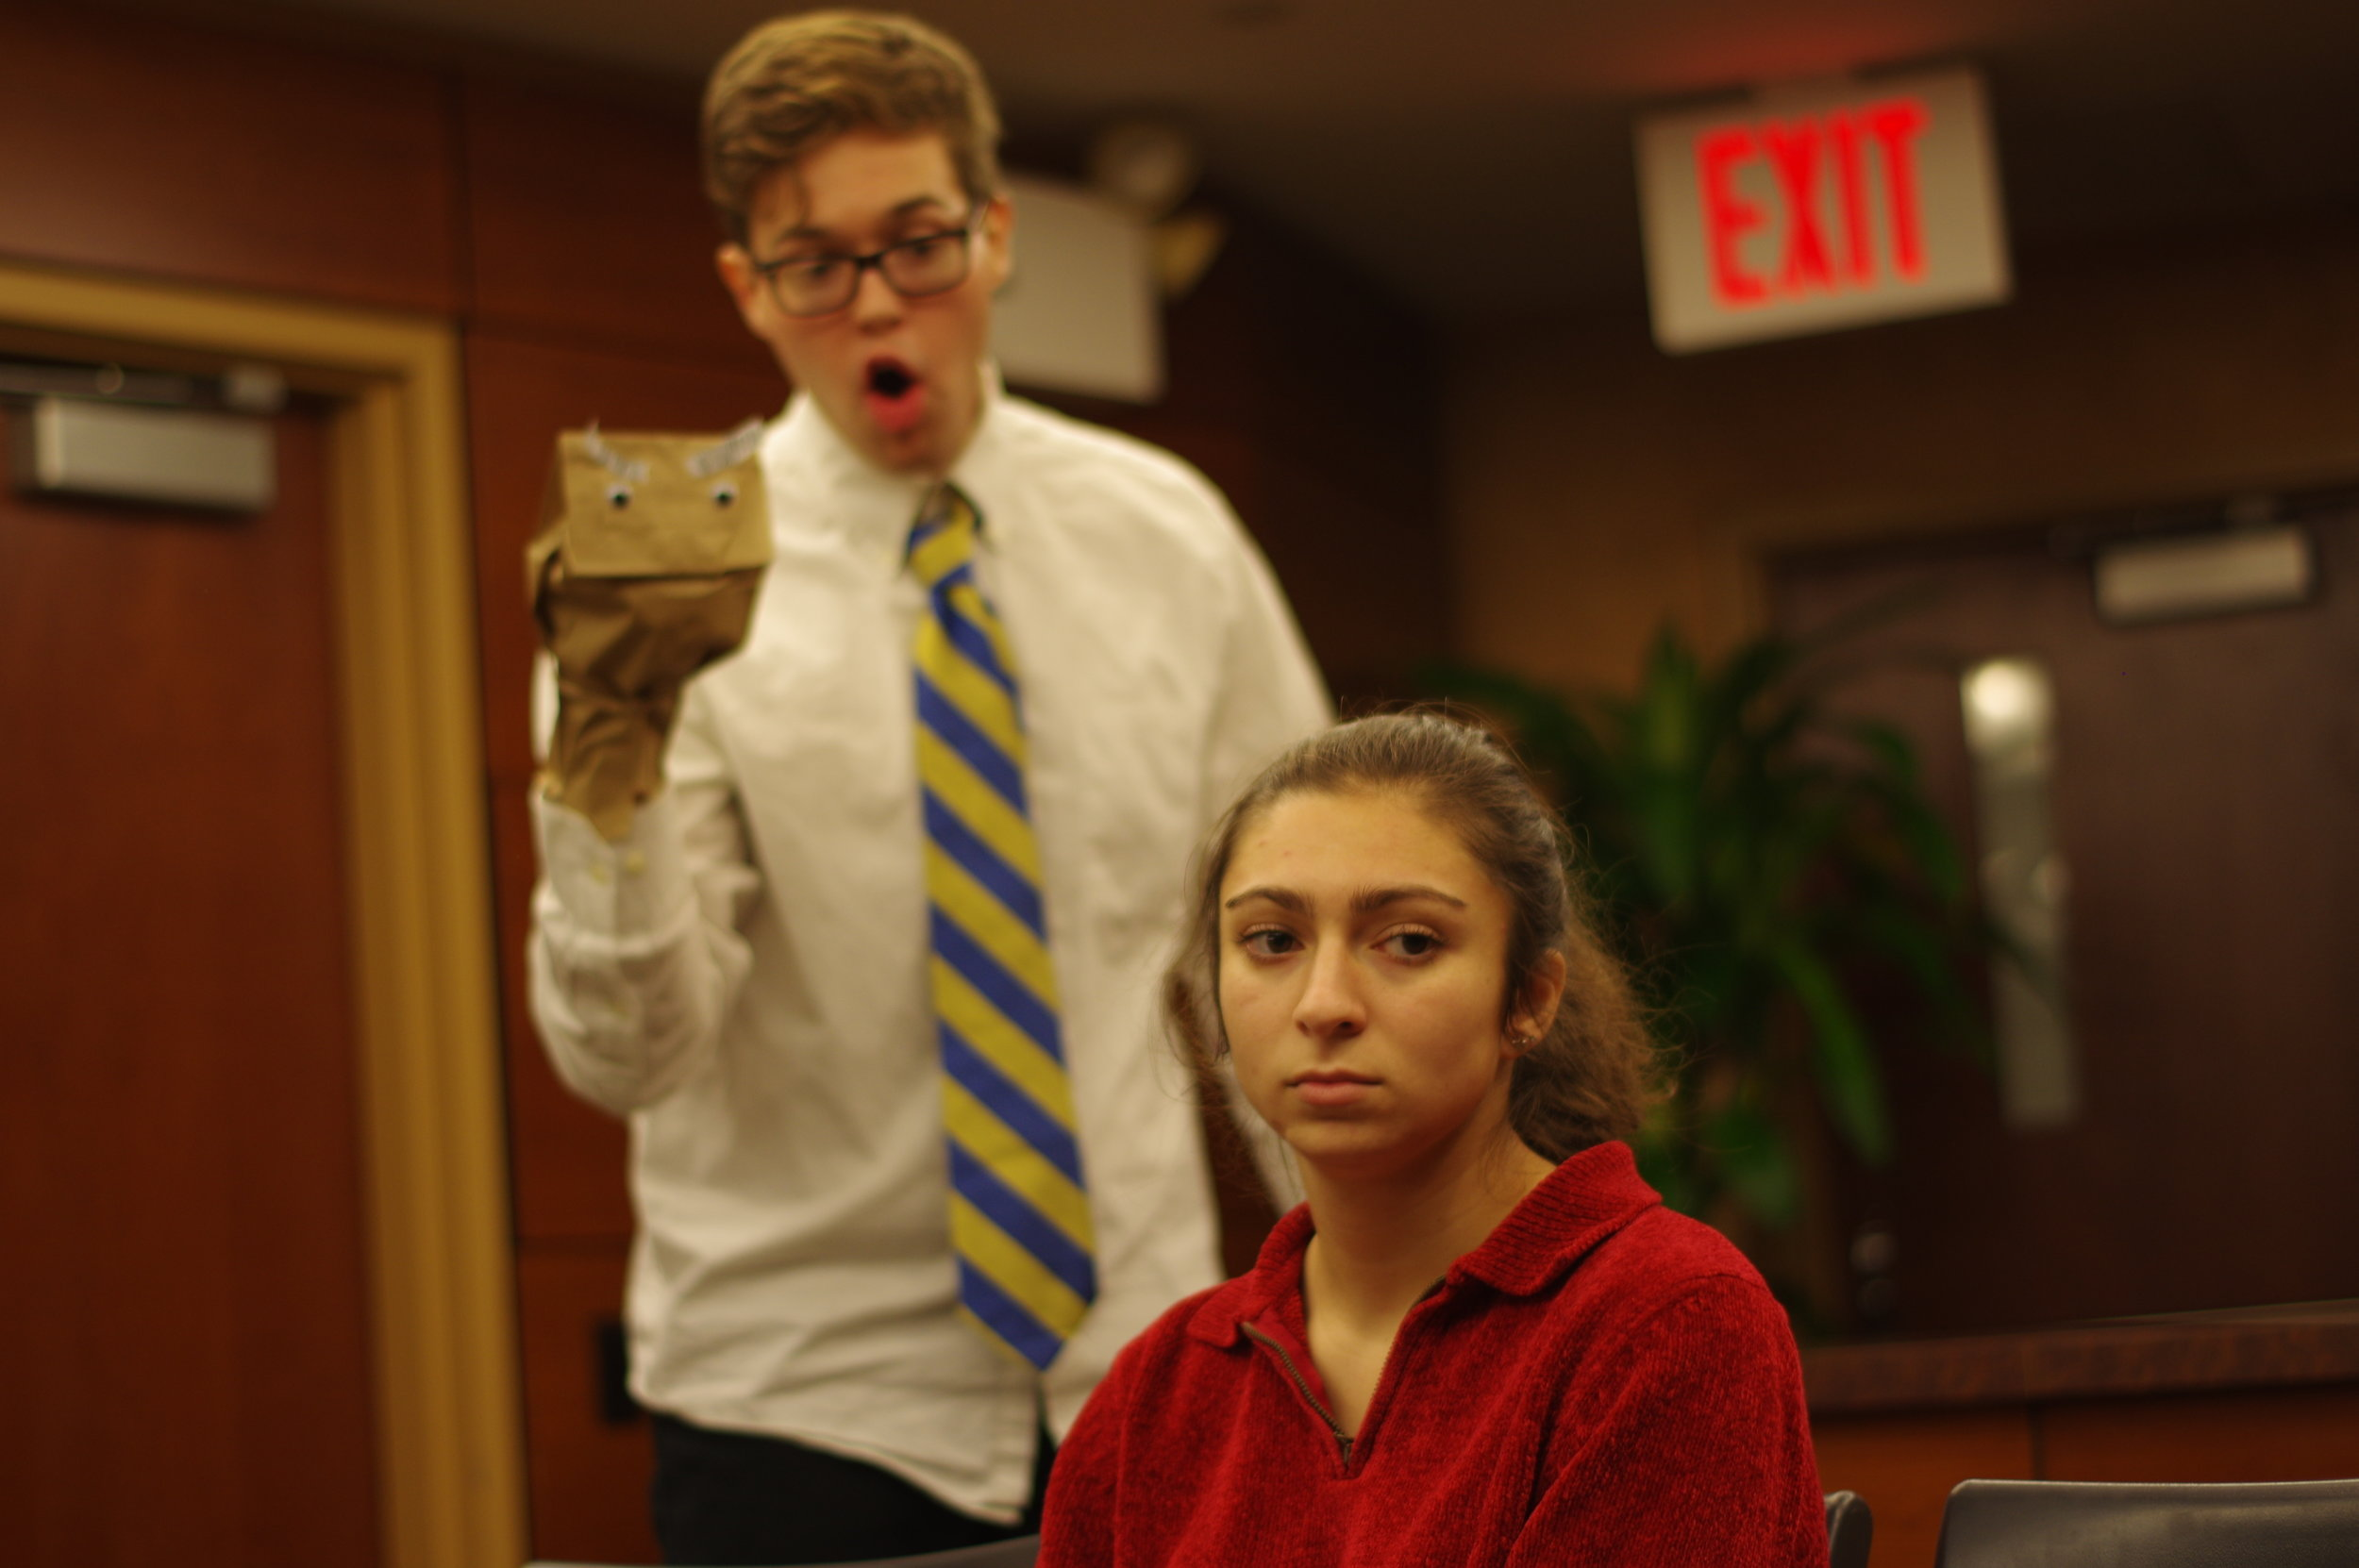 "(L to R) Nick Spink and Sydney Rutigliano in ""Mom, I Want to Be a Chemist"" by Ryan Cook, Derek Crosby, and Jack McManus."